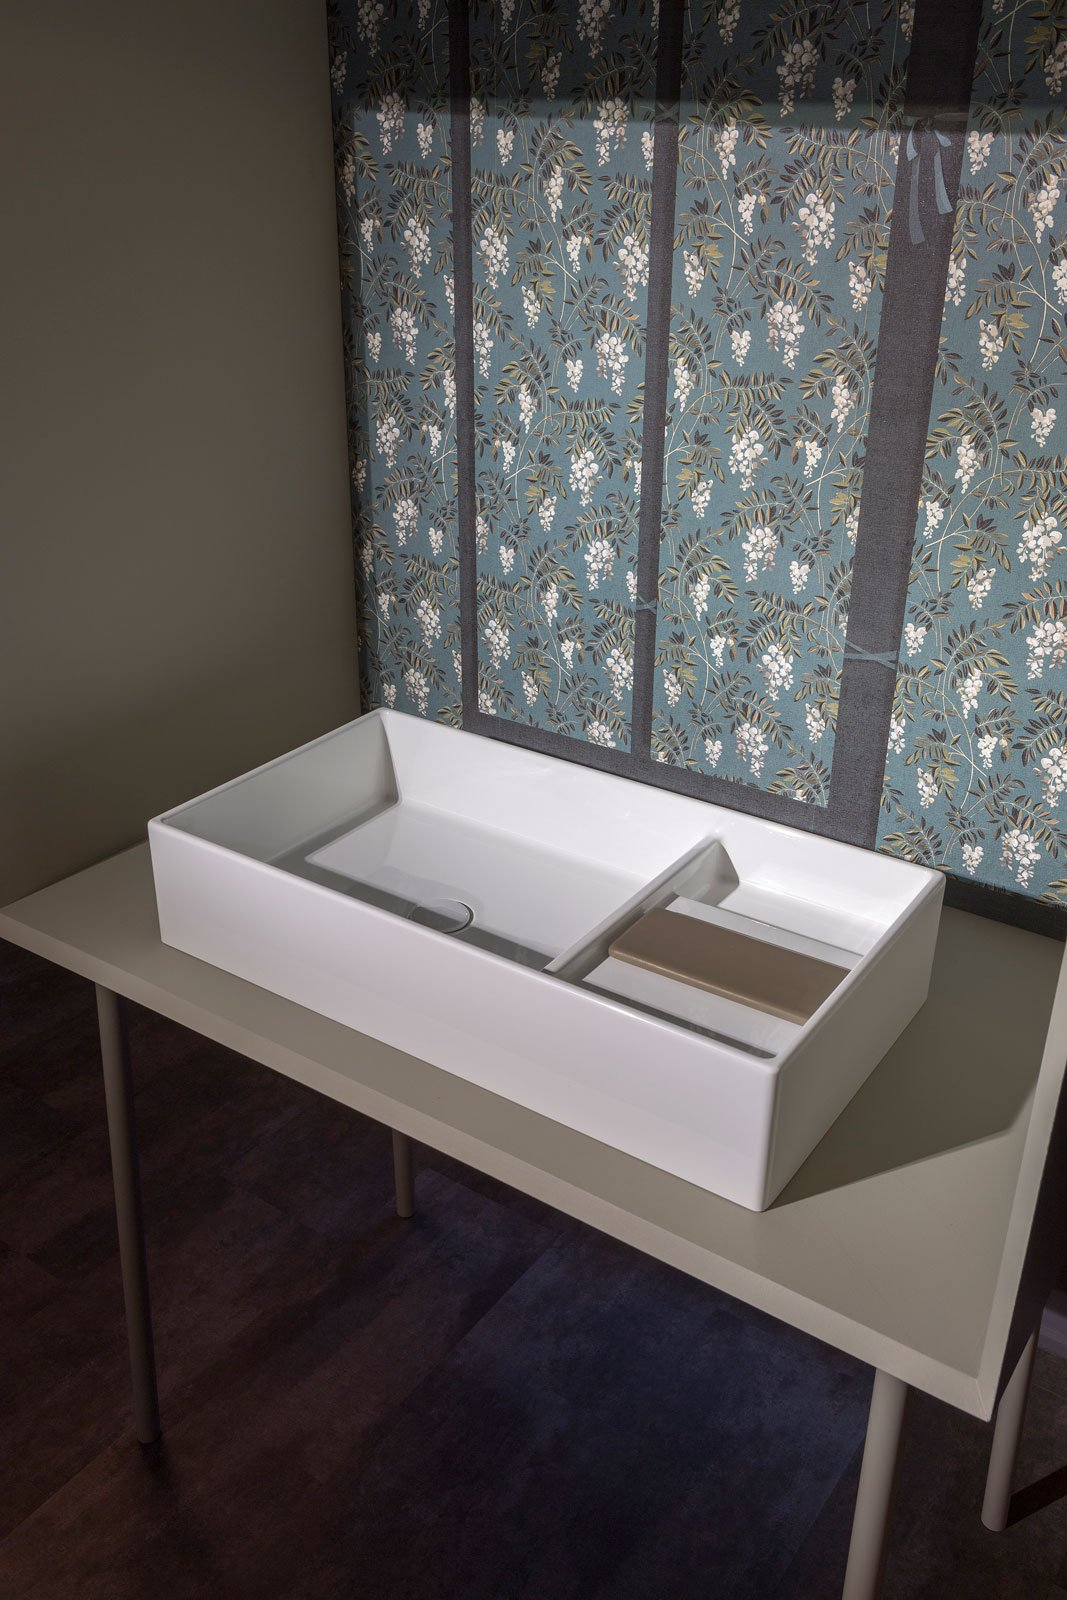 Ceramica globo display collection by gamfratesi 10 - Fu pugnalato nel bagno ...